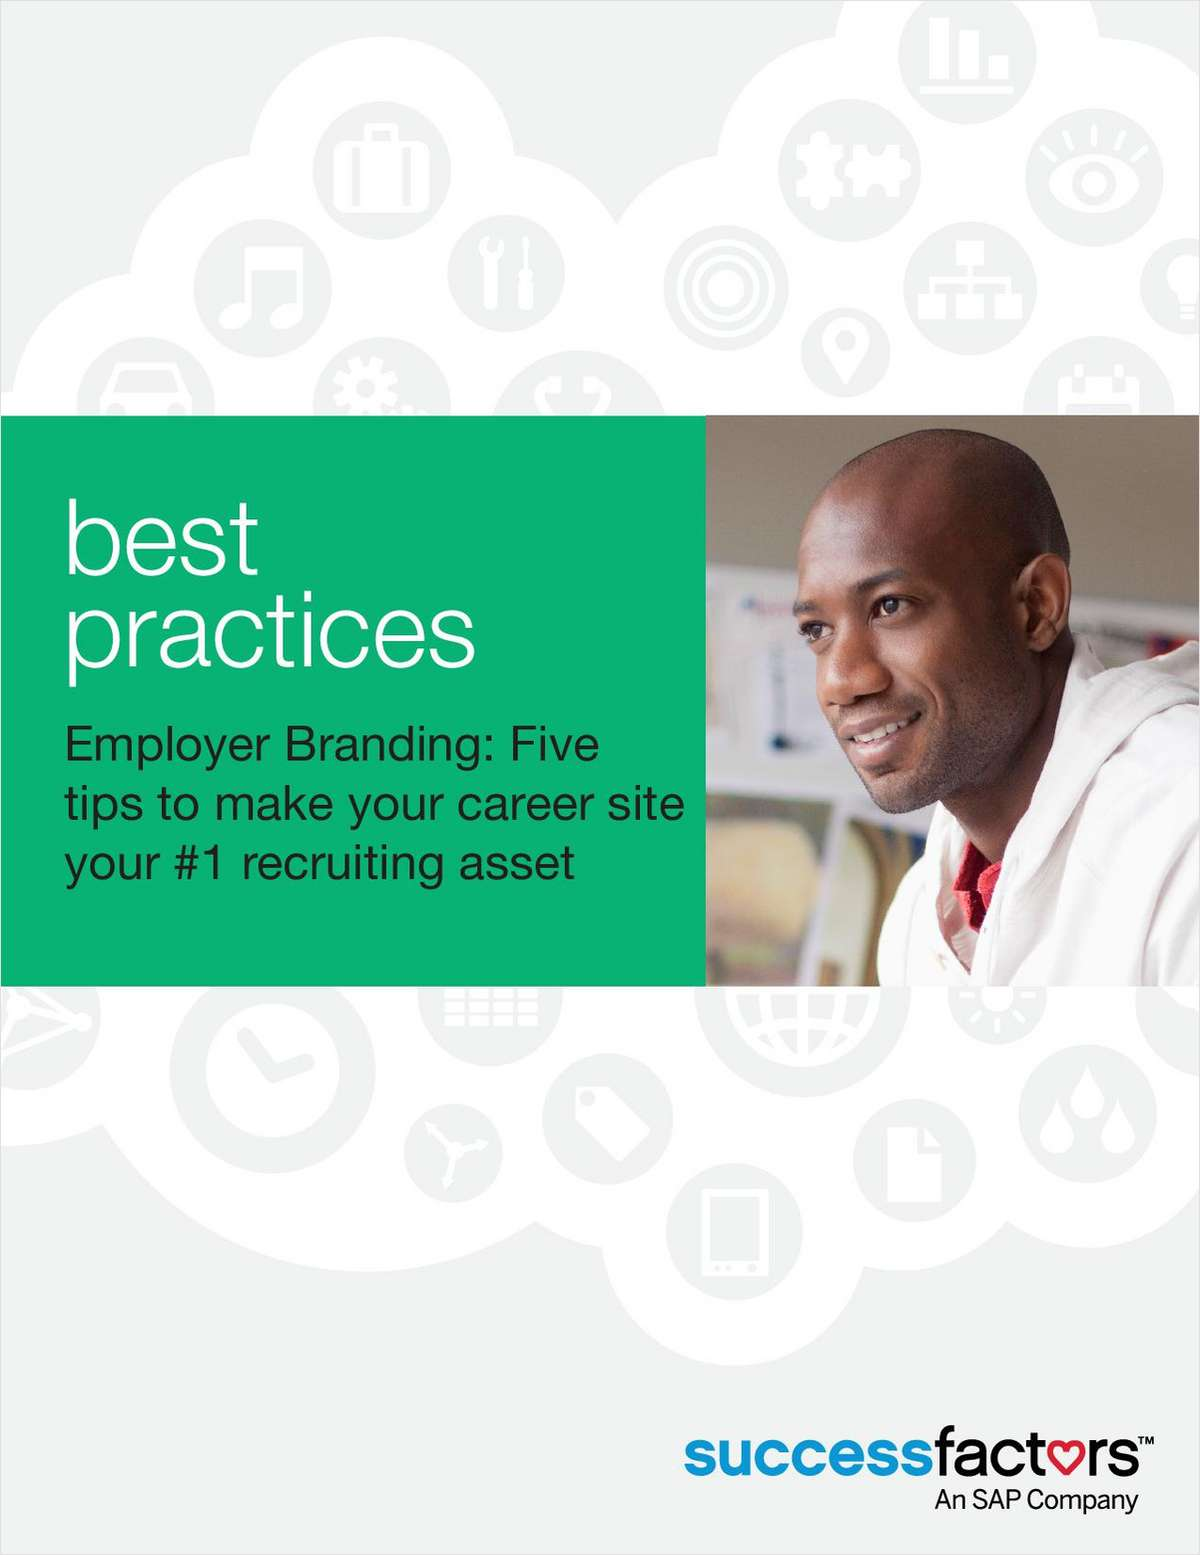 Employer Branding: Five Tips to Make Your Career Site Your #1 Recruiting Asset